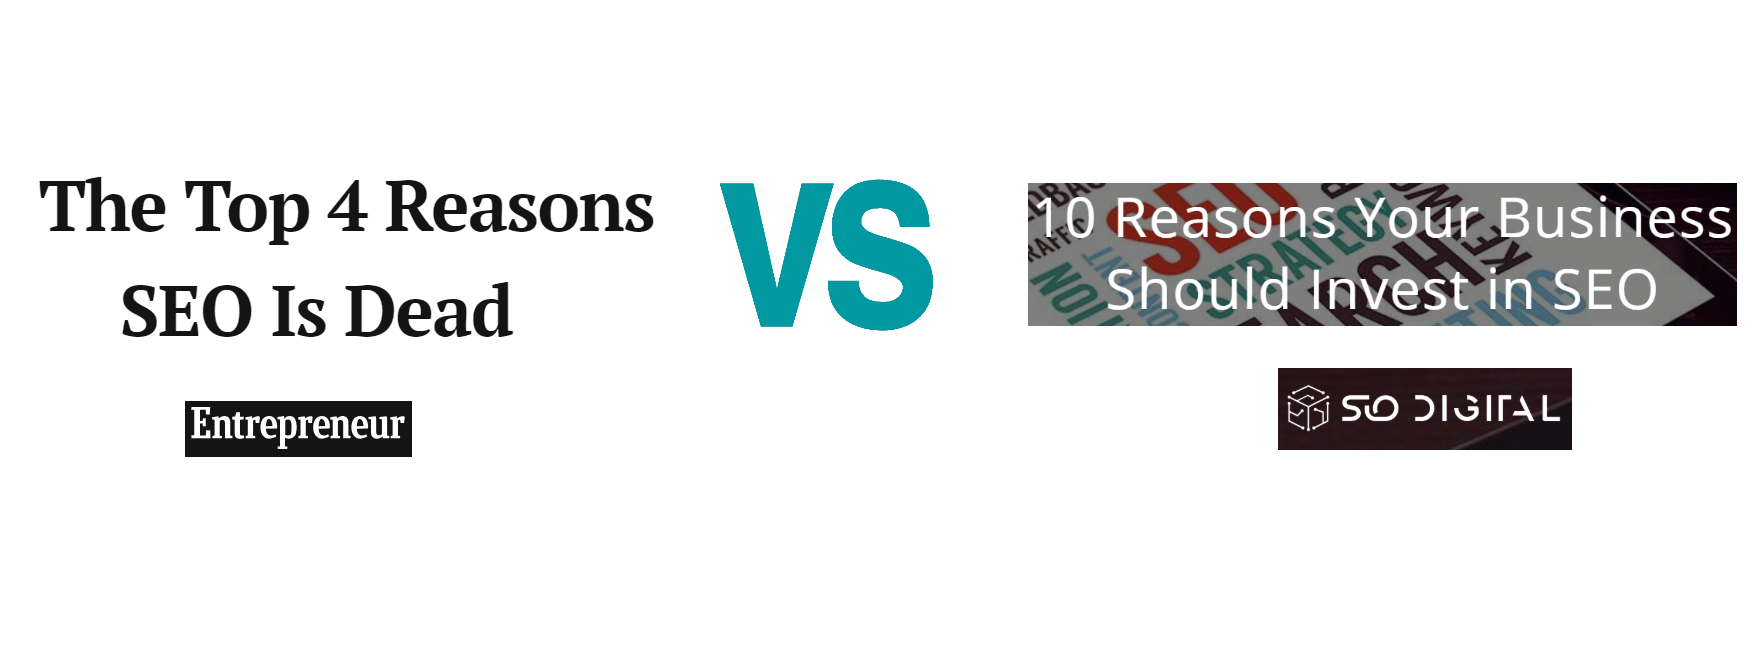 """"""" The Top 4 Reasons SEO Is Dead """" (Entrepreneur) vs. """" 10 Reasons Your Business Should Invest in SEO """" (SIO Digital)"""